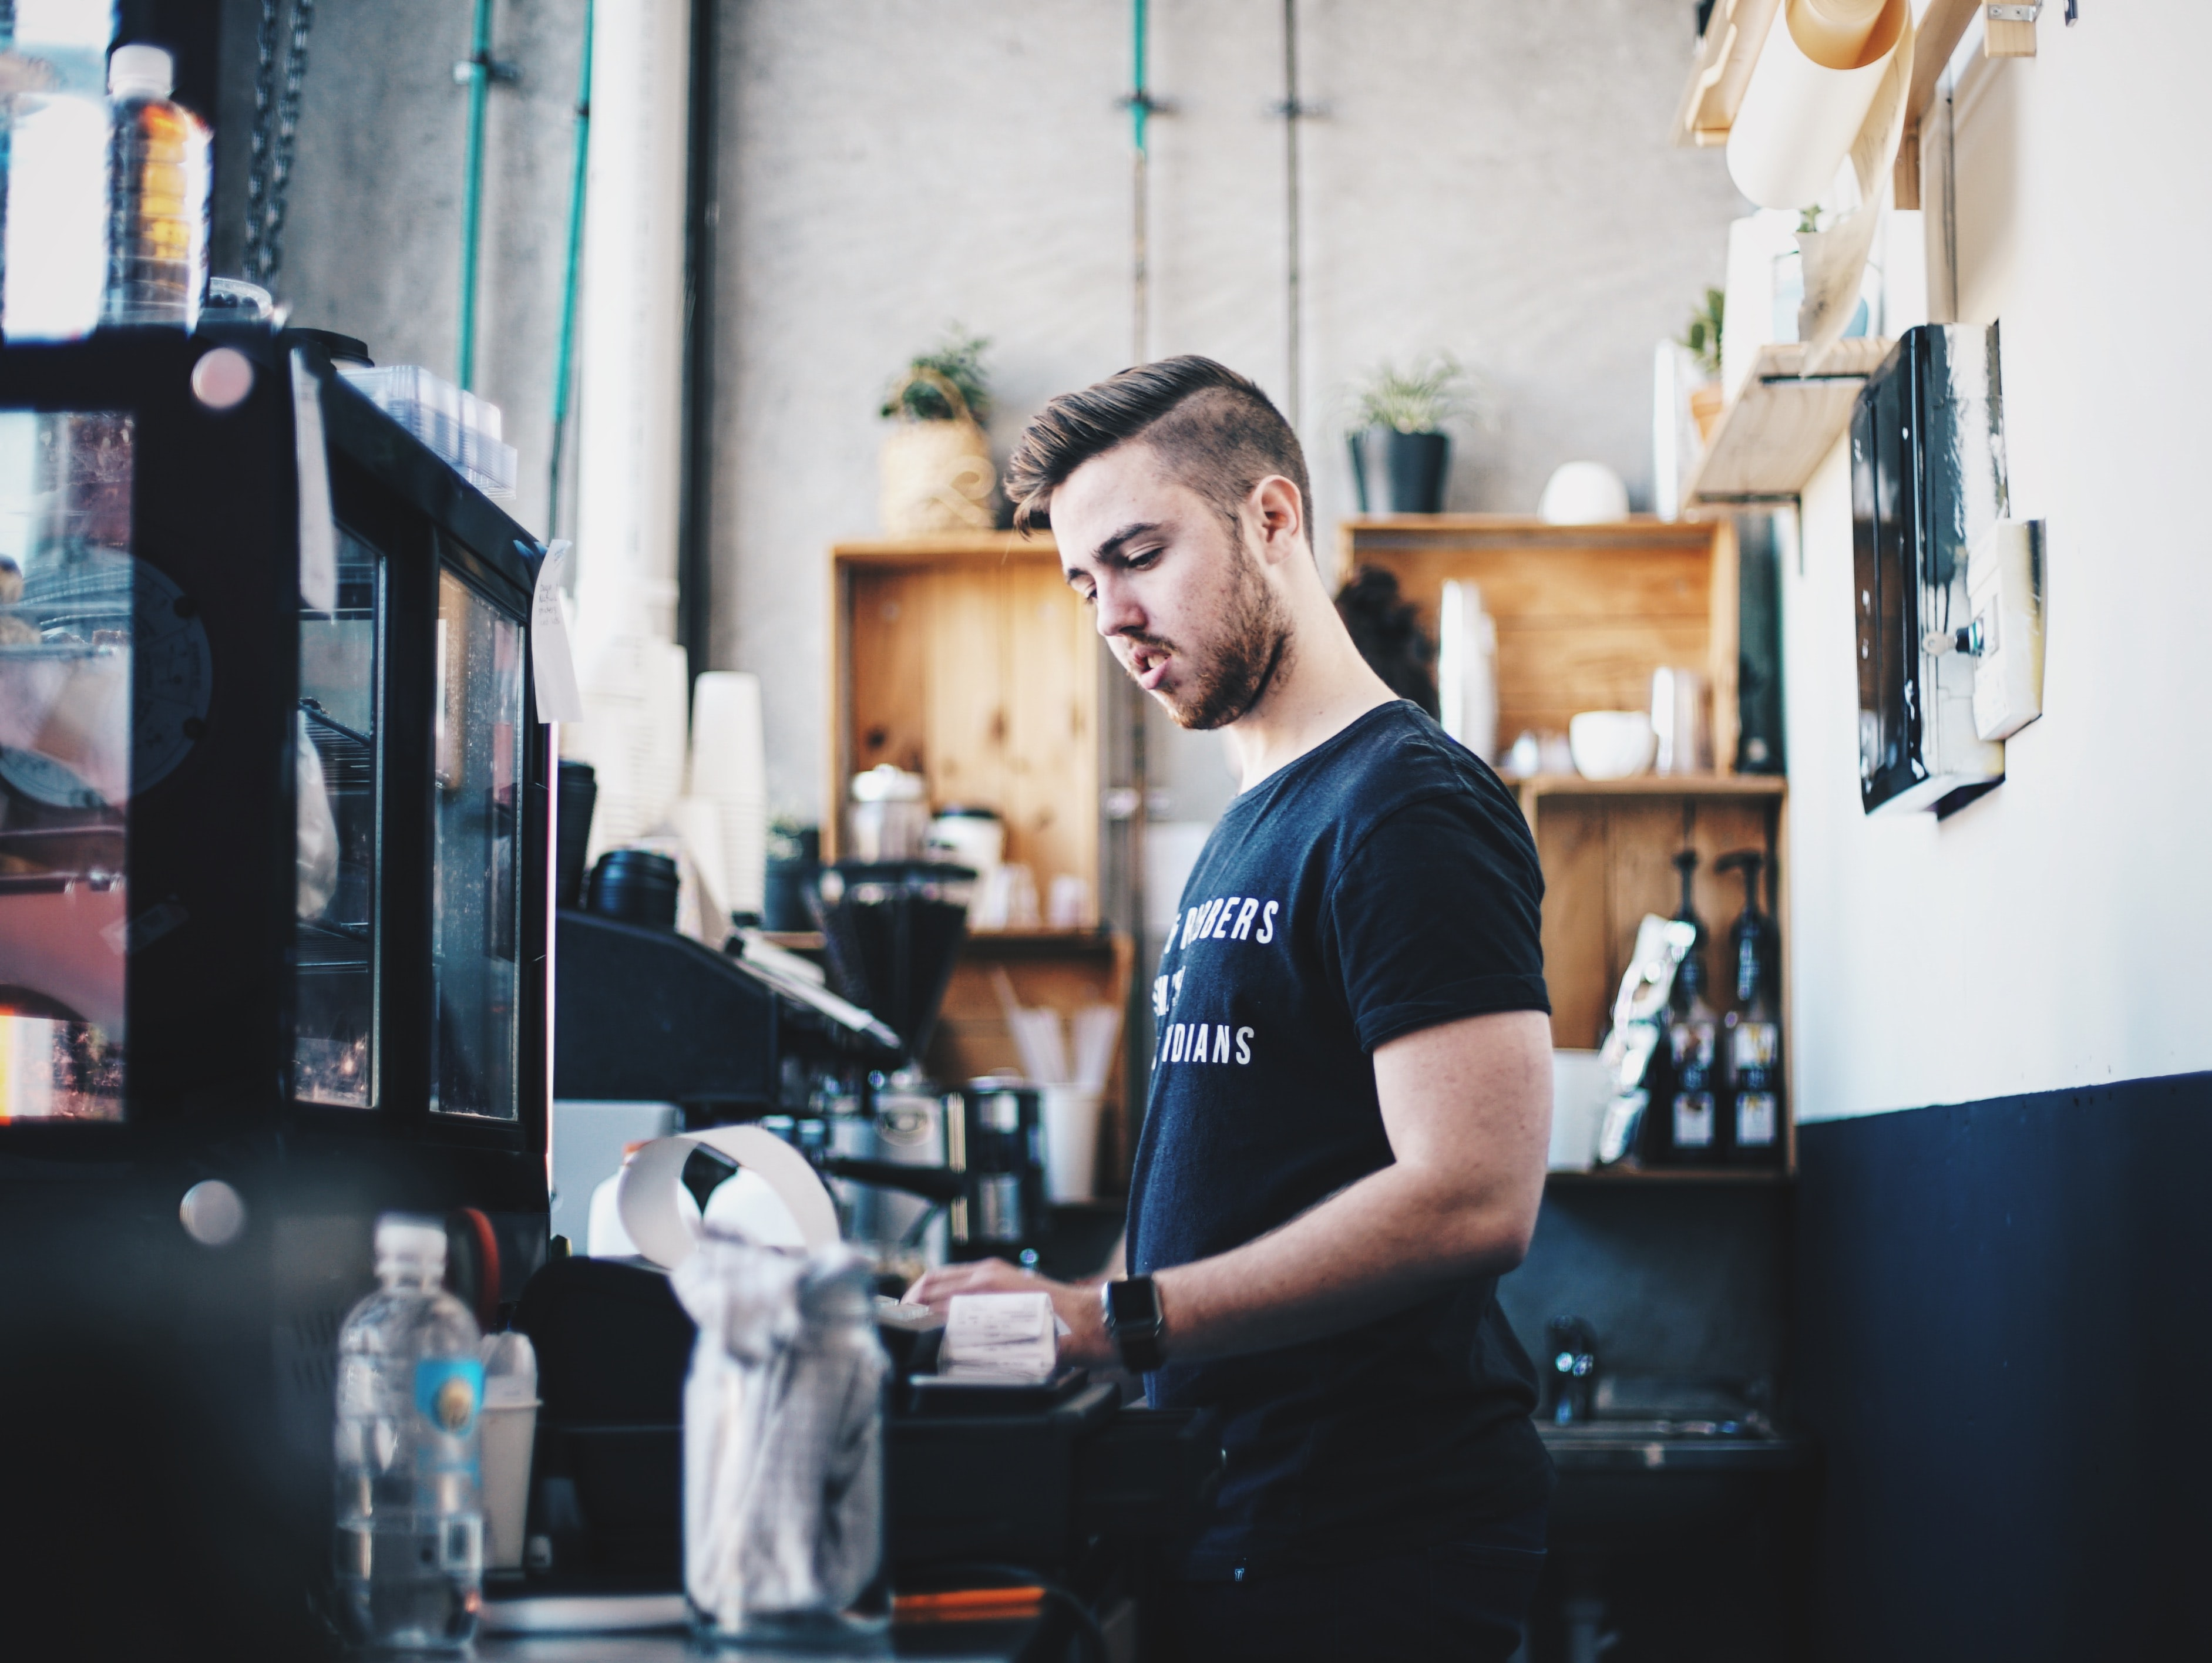 shallow focus photography of man using cash register inside counter area